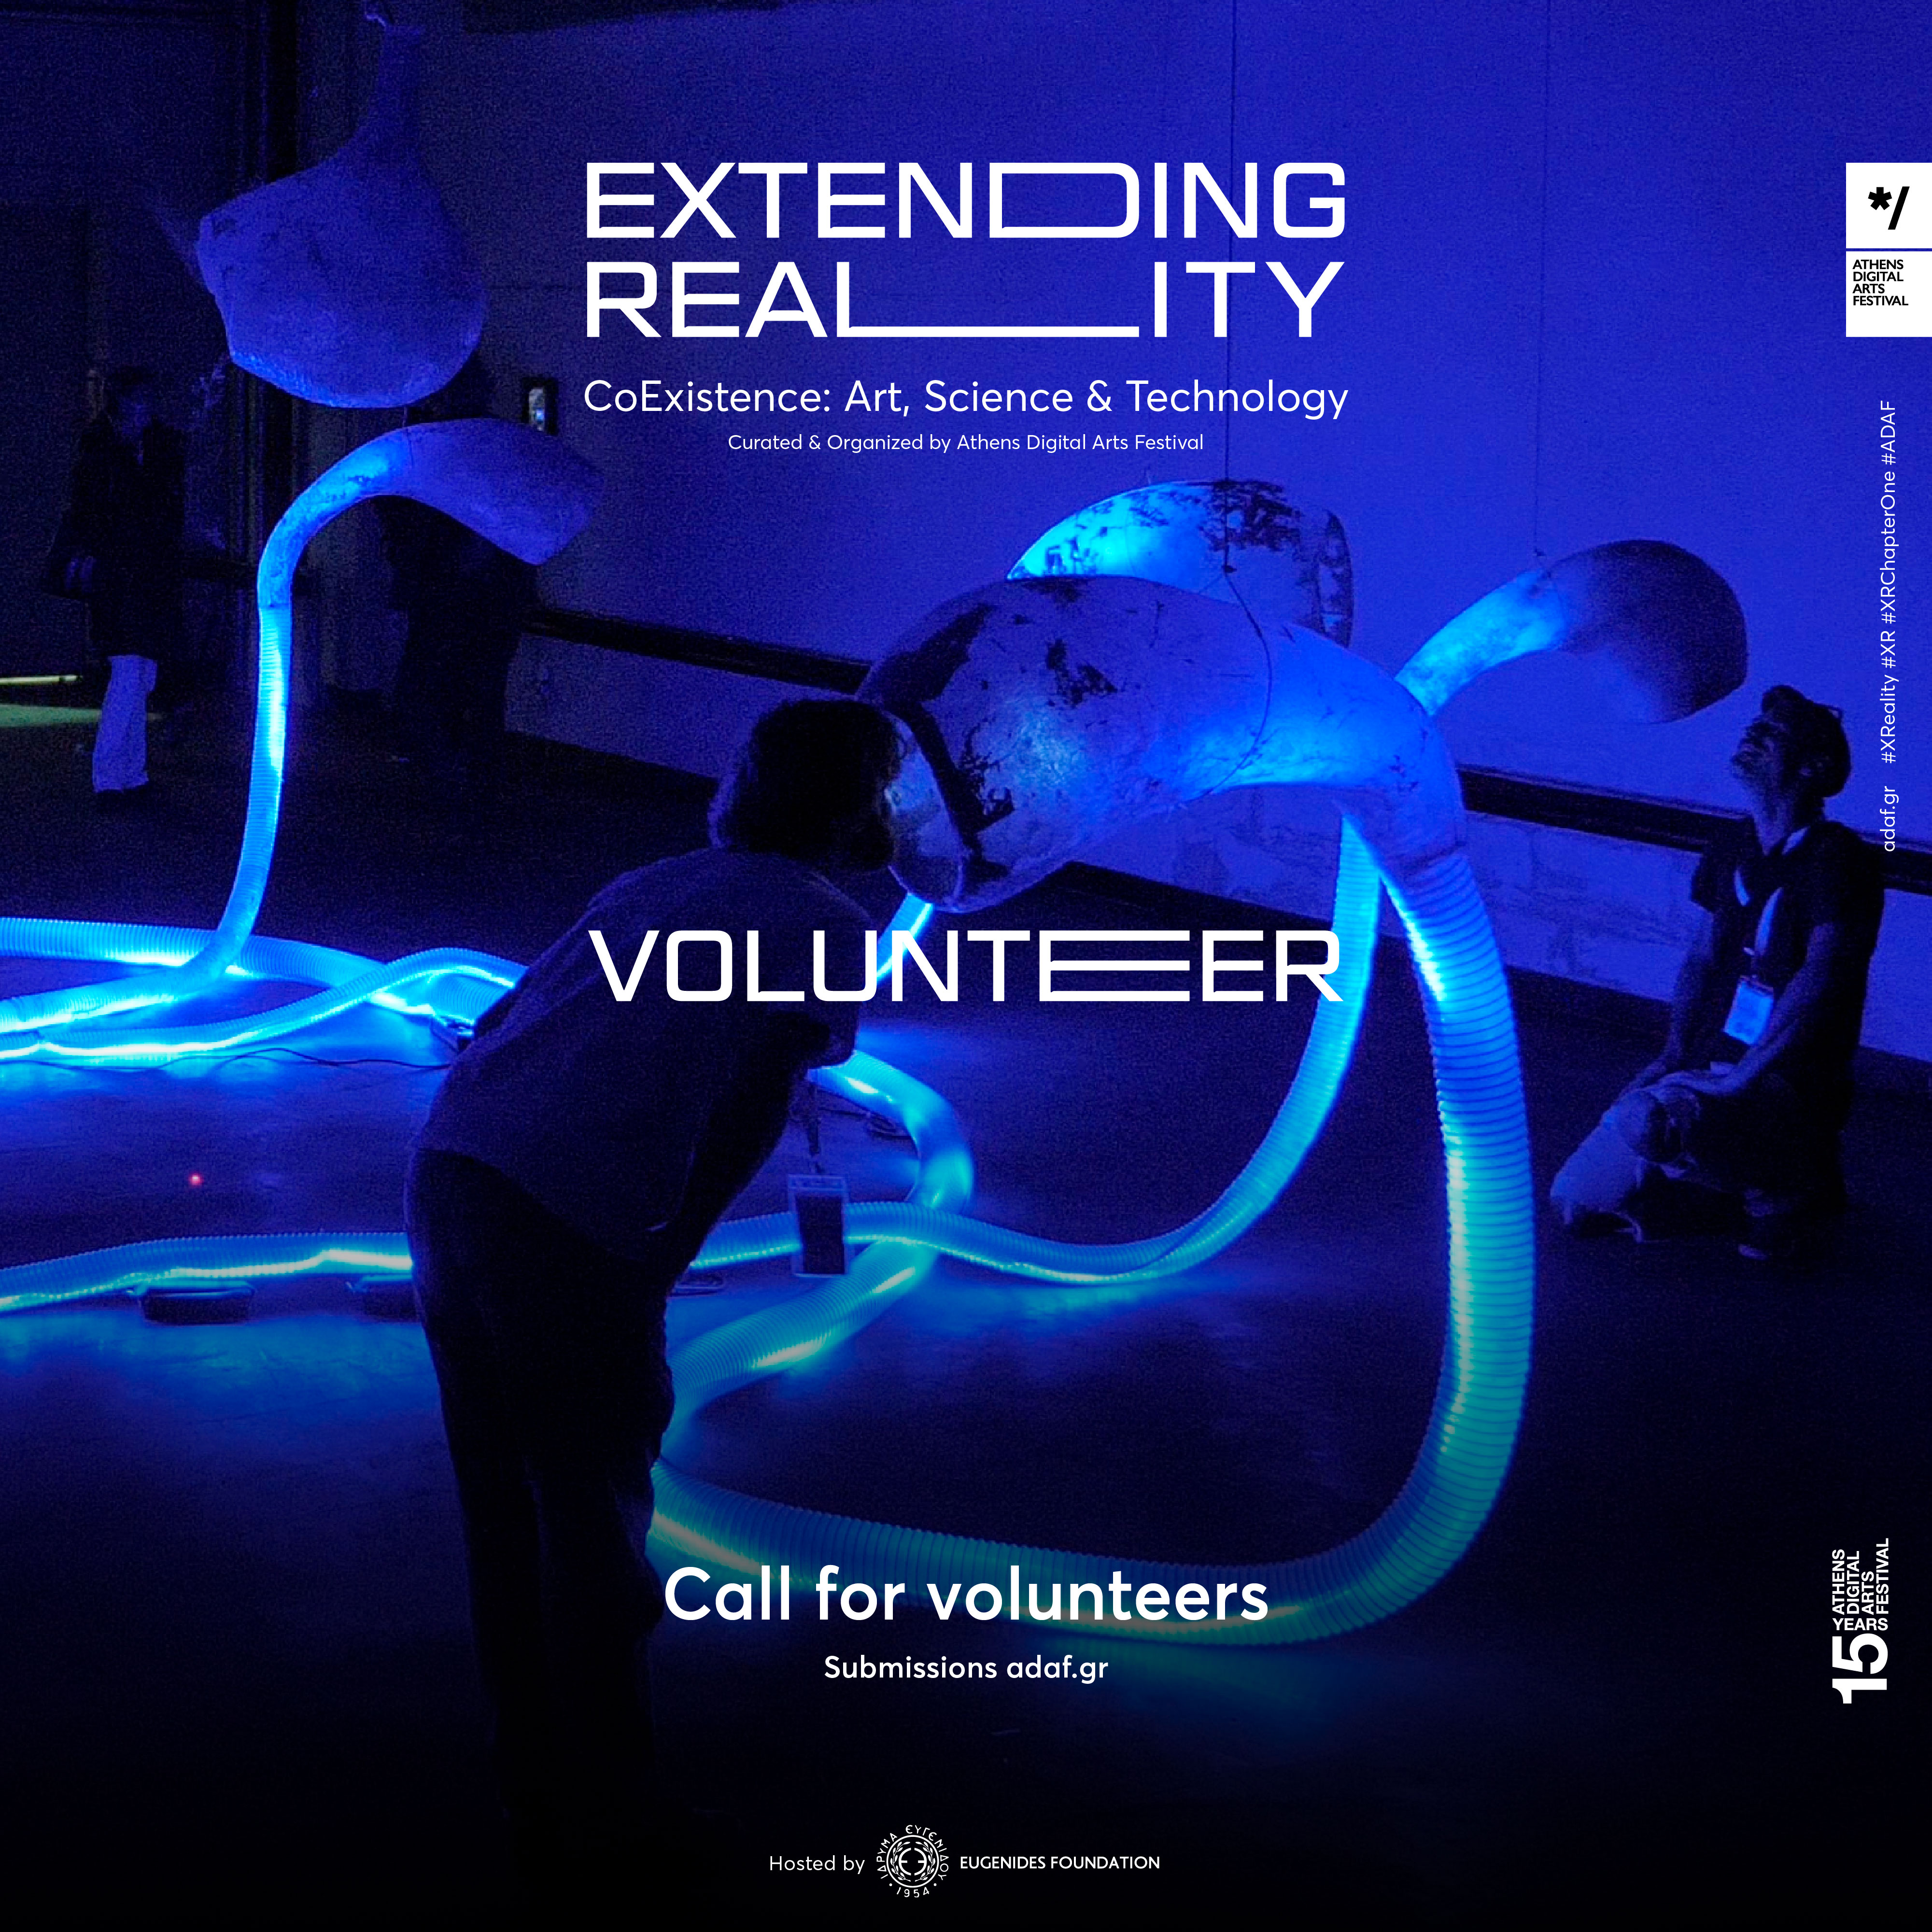 Extending Reality: Call for Volunteers